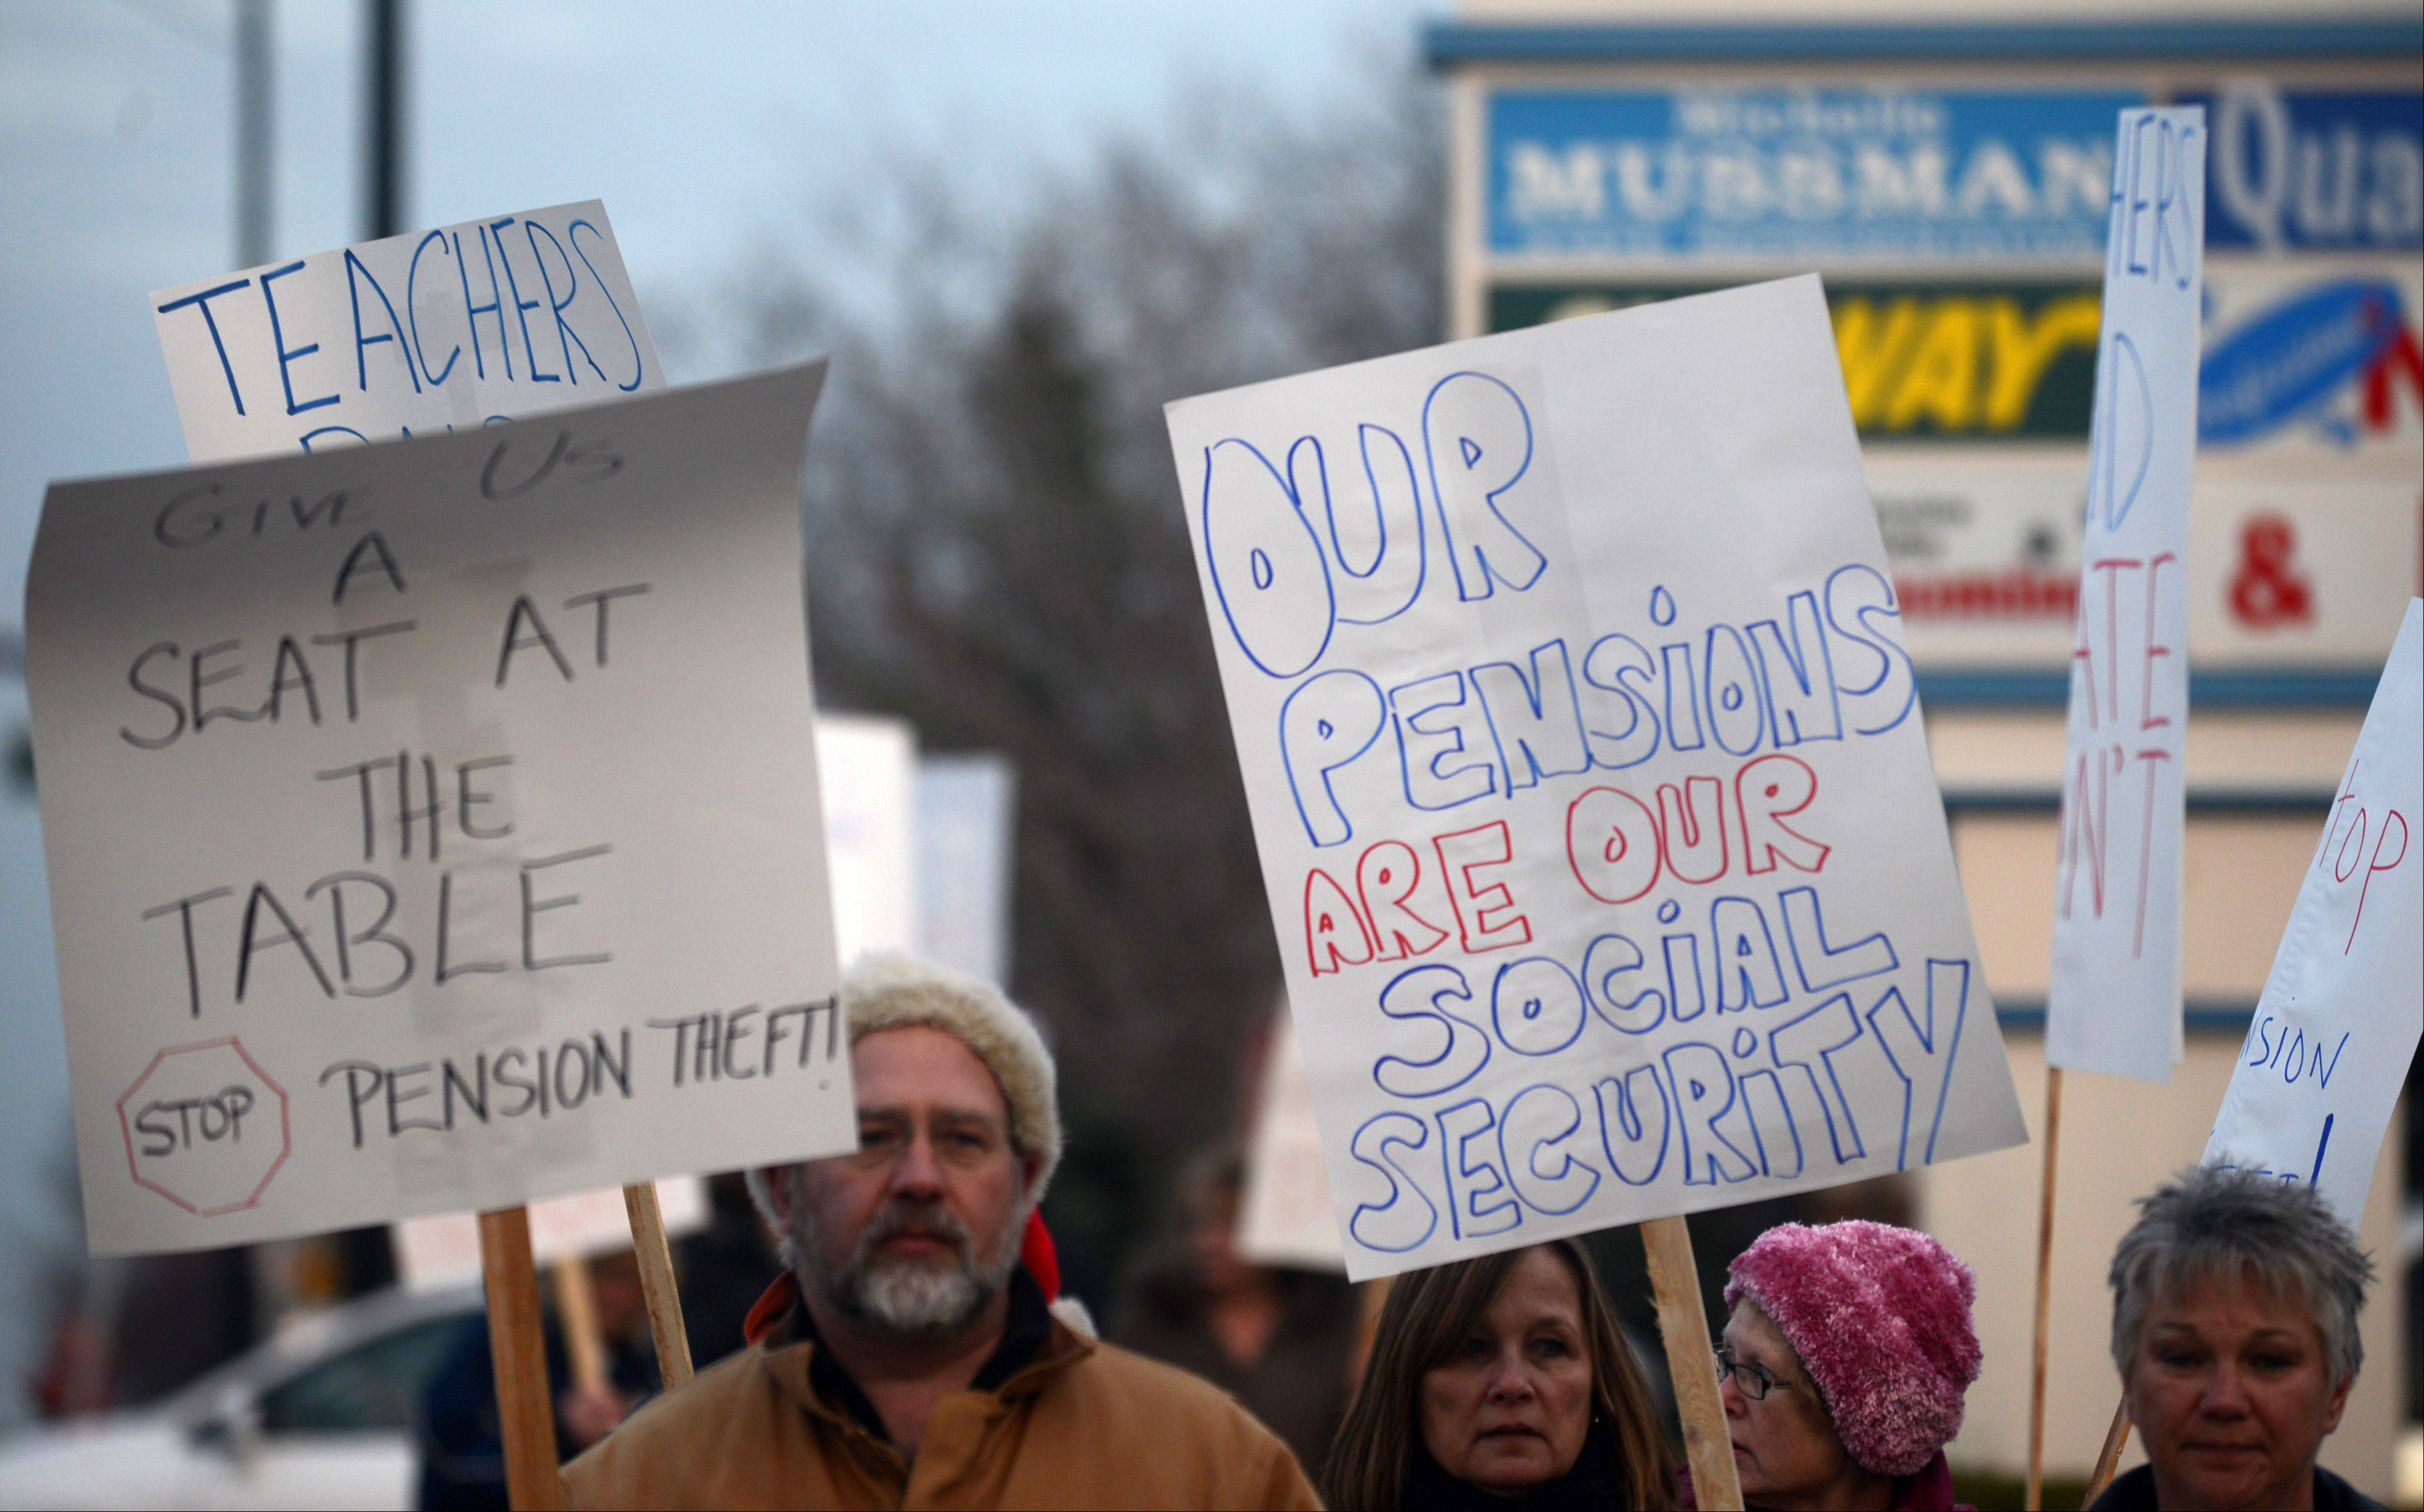 About 50 teachers and other state employees demonstrated and met with state Rep. Michelle Mussmann outside her Schaumburg office Monday to oppose cuts to pension benefits.